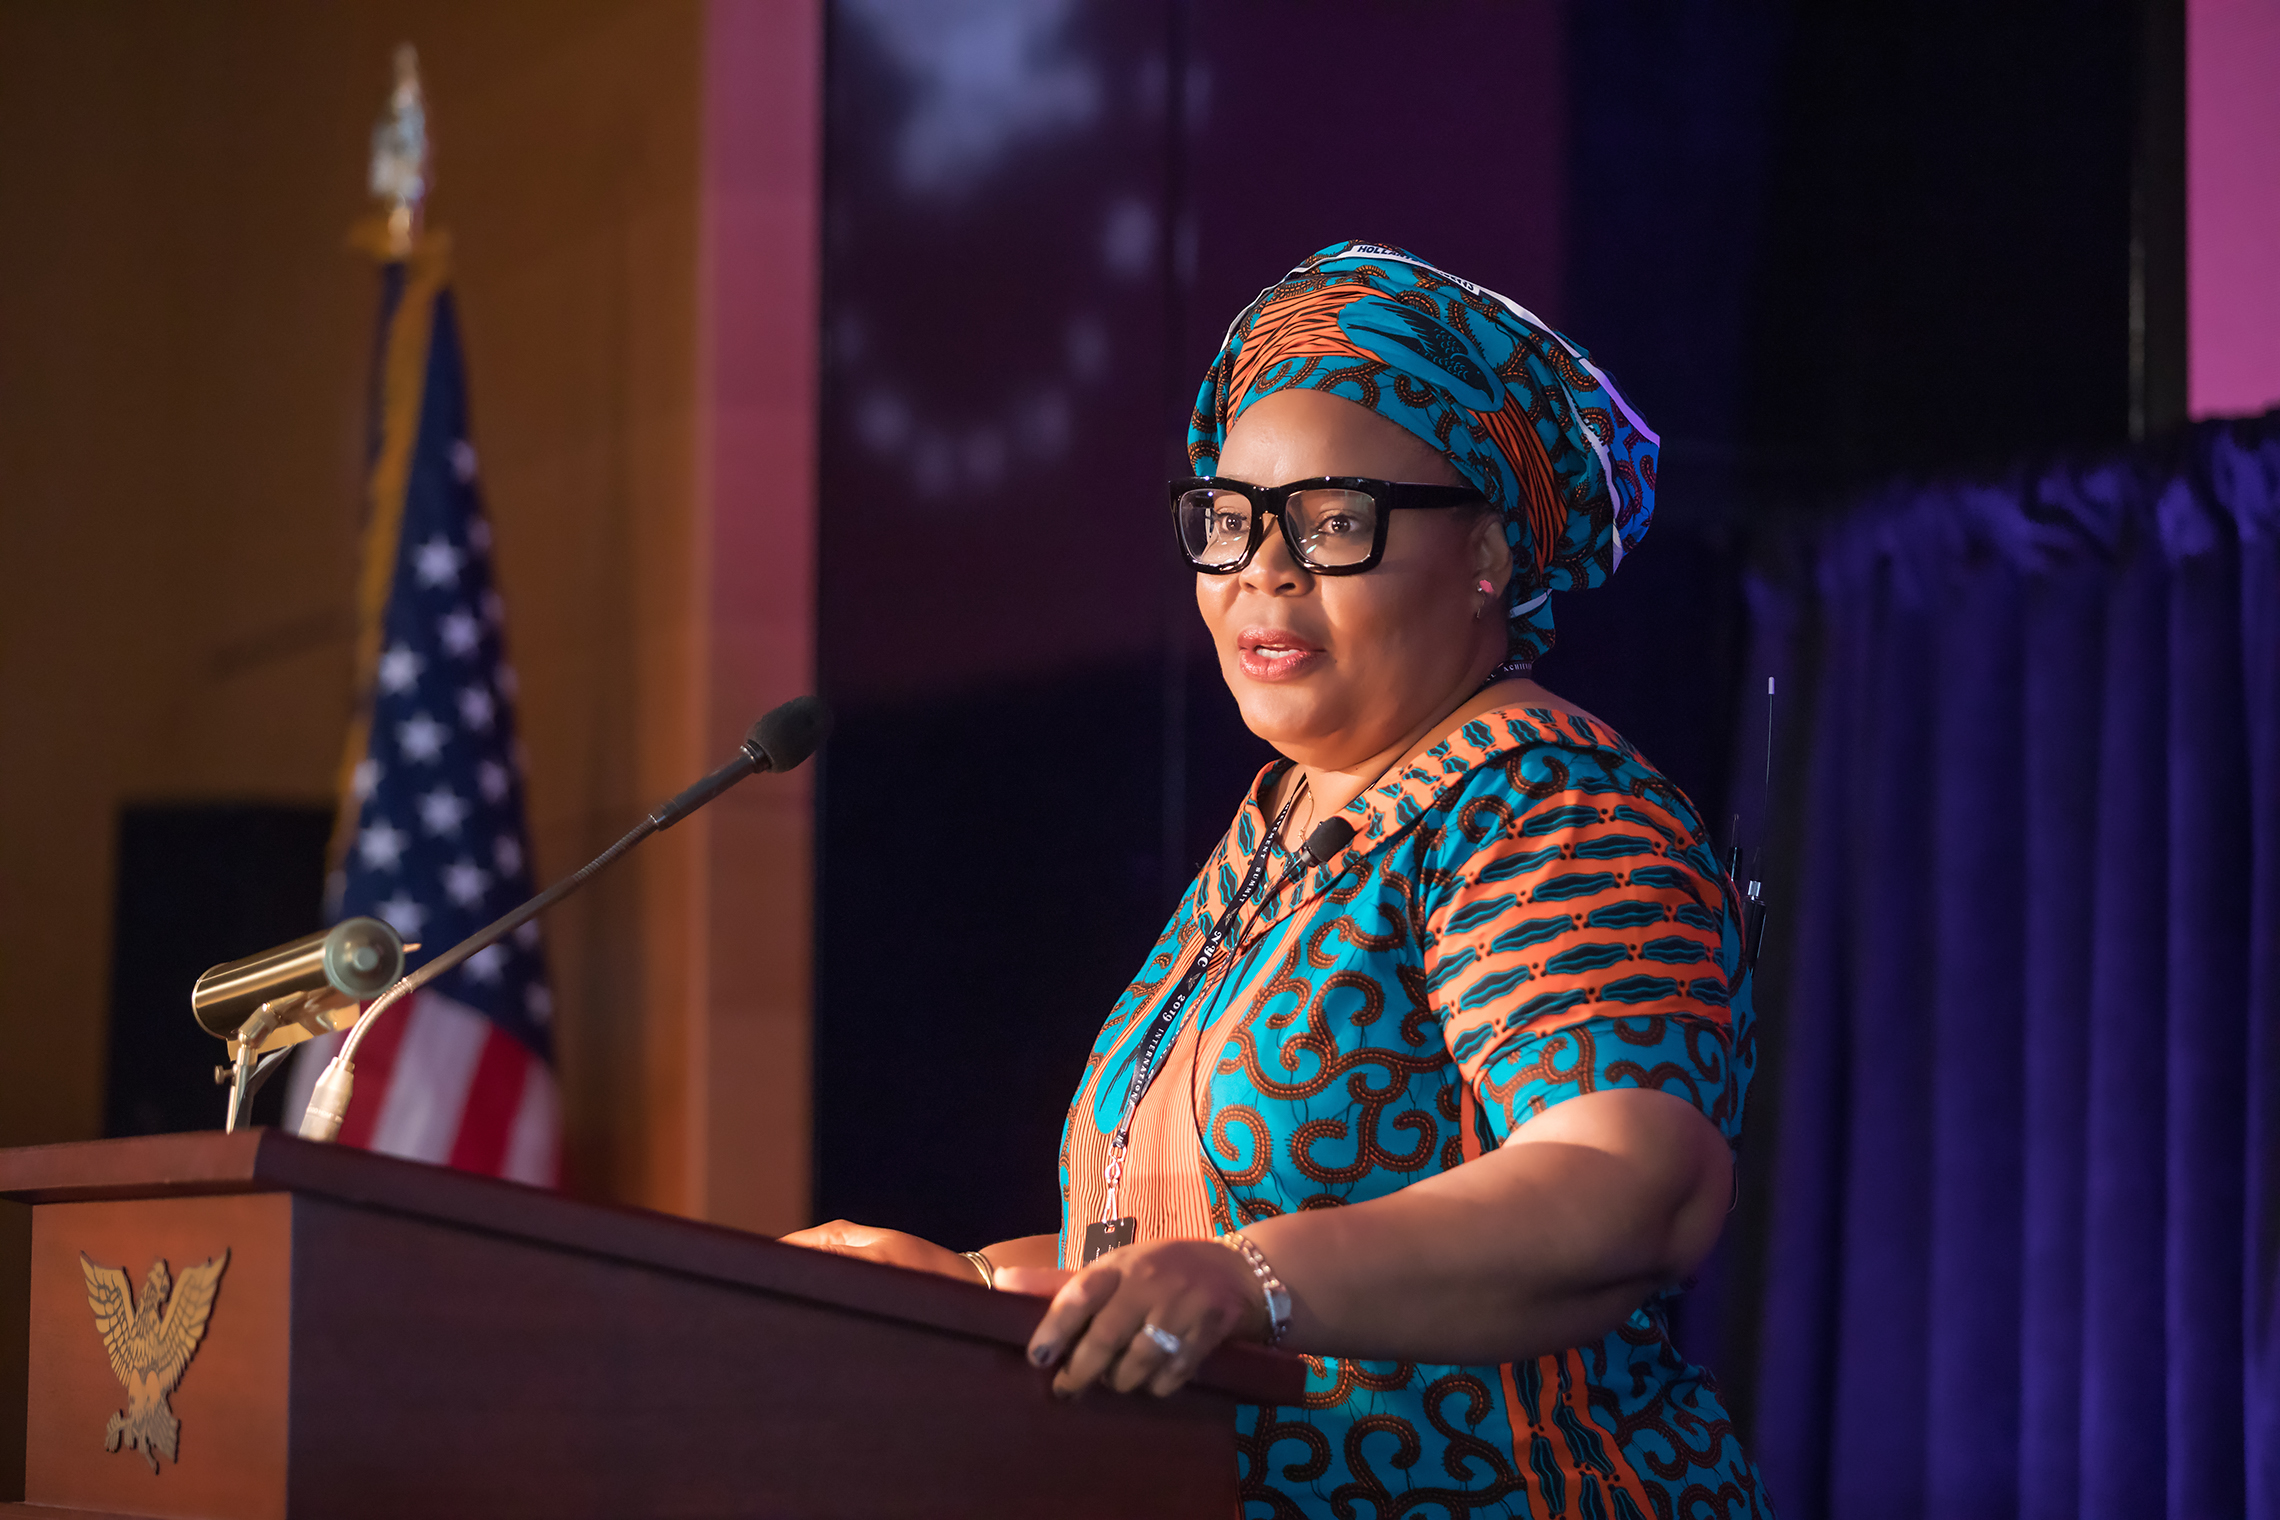 Leymah Gbowee of Liberia, the recipient of the Nobel Peace Prize, addresses Academy delegates and members at the Summit. Photo credit: American Academy of Achievement.